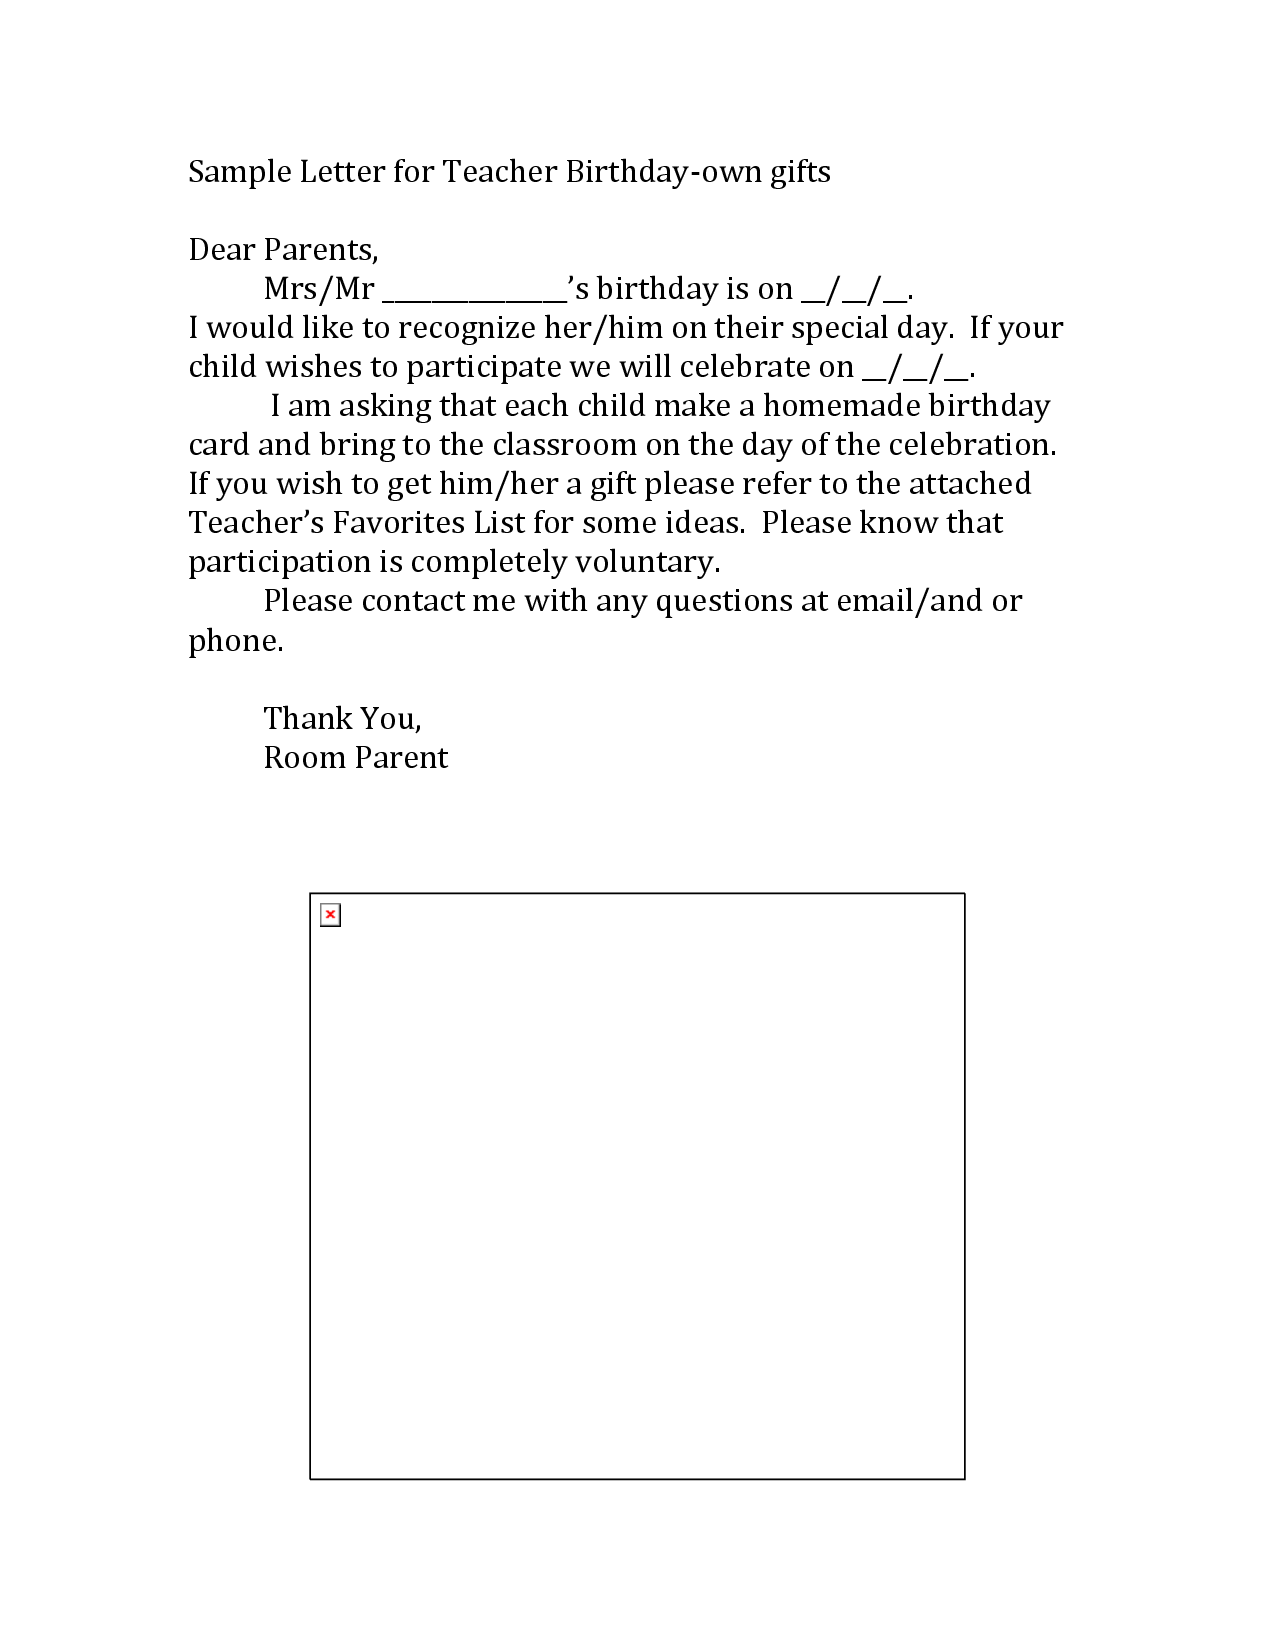 Teacher Templates Letters Parents Sample Letter For